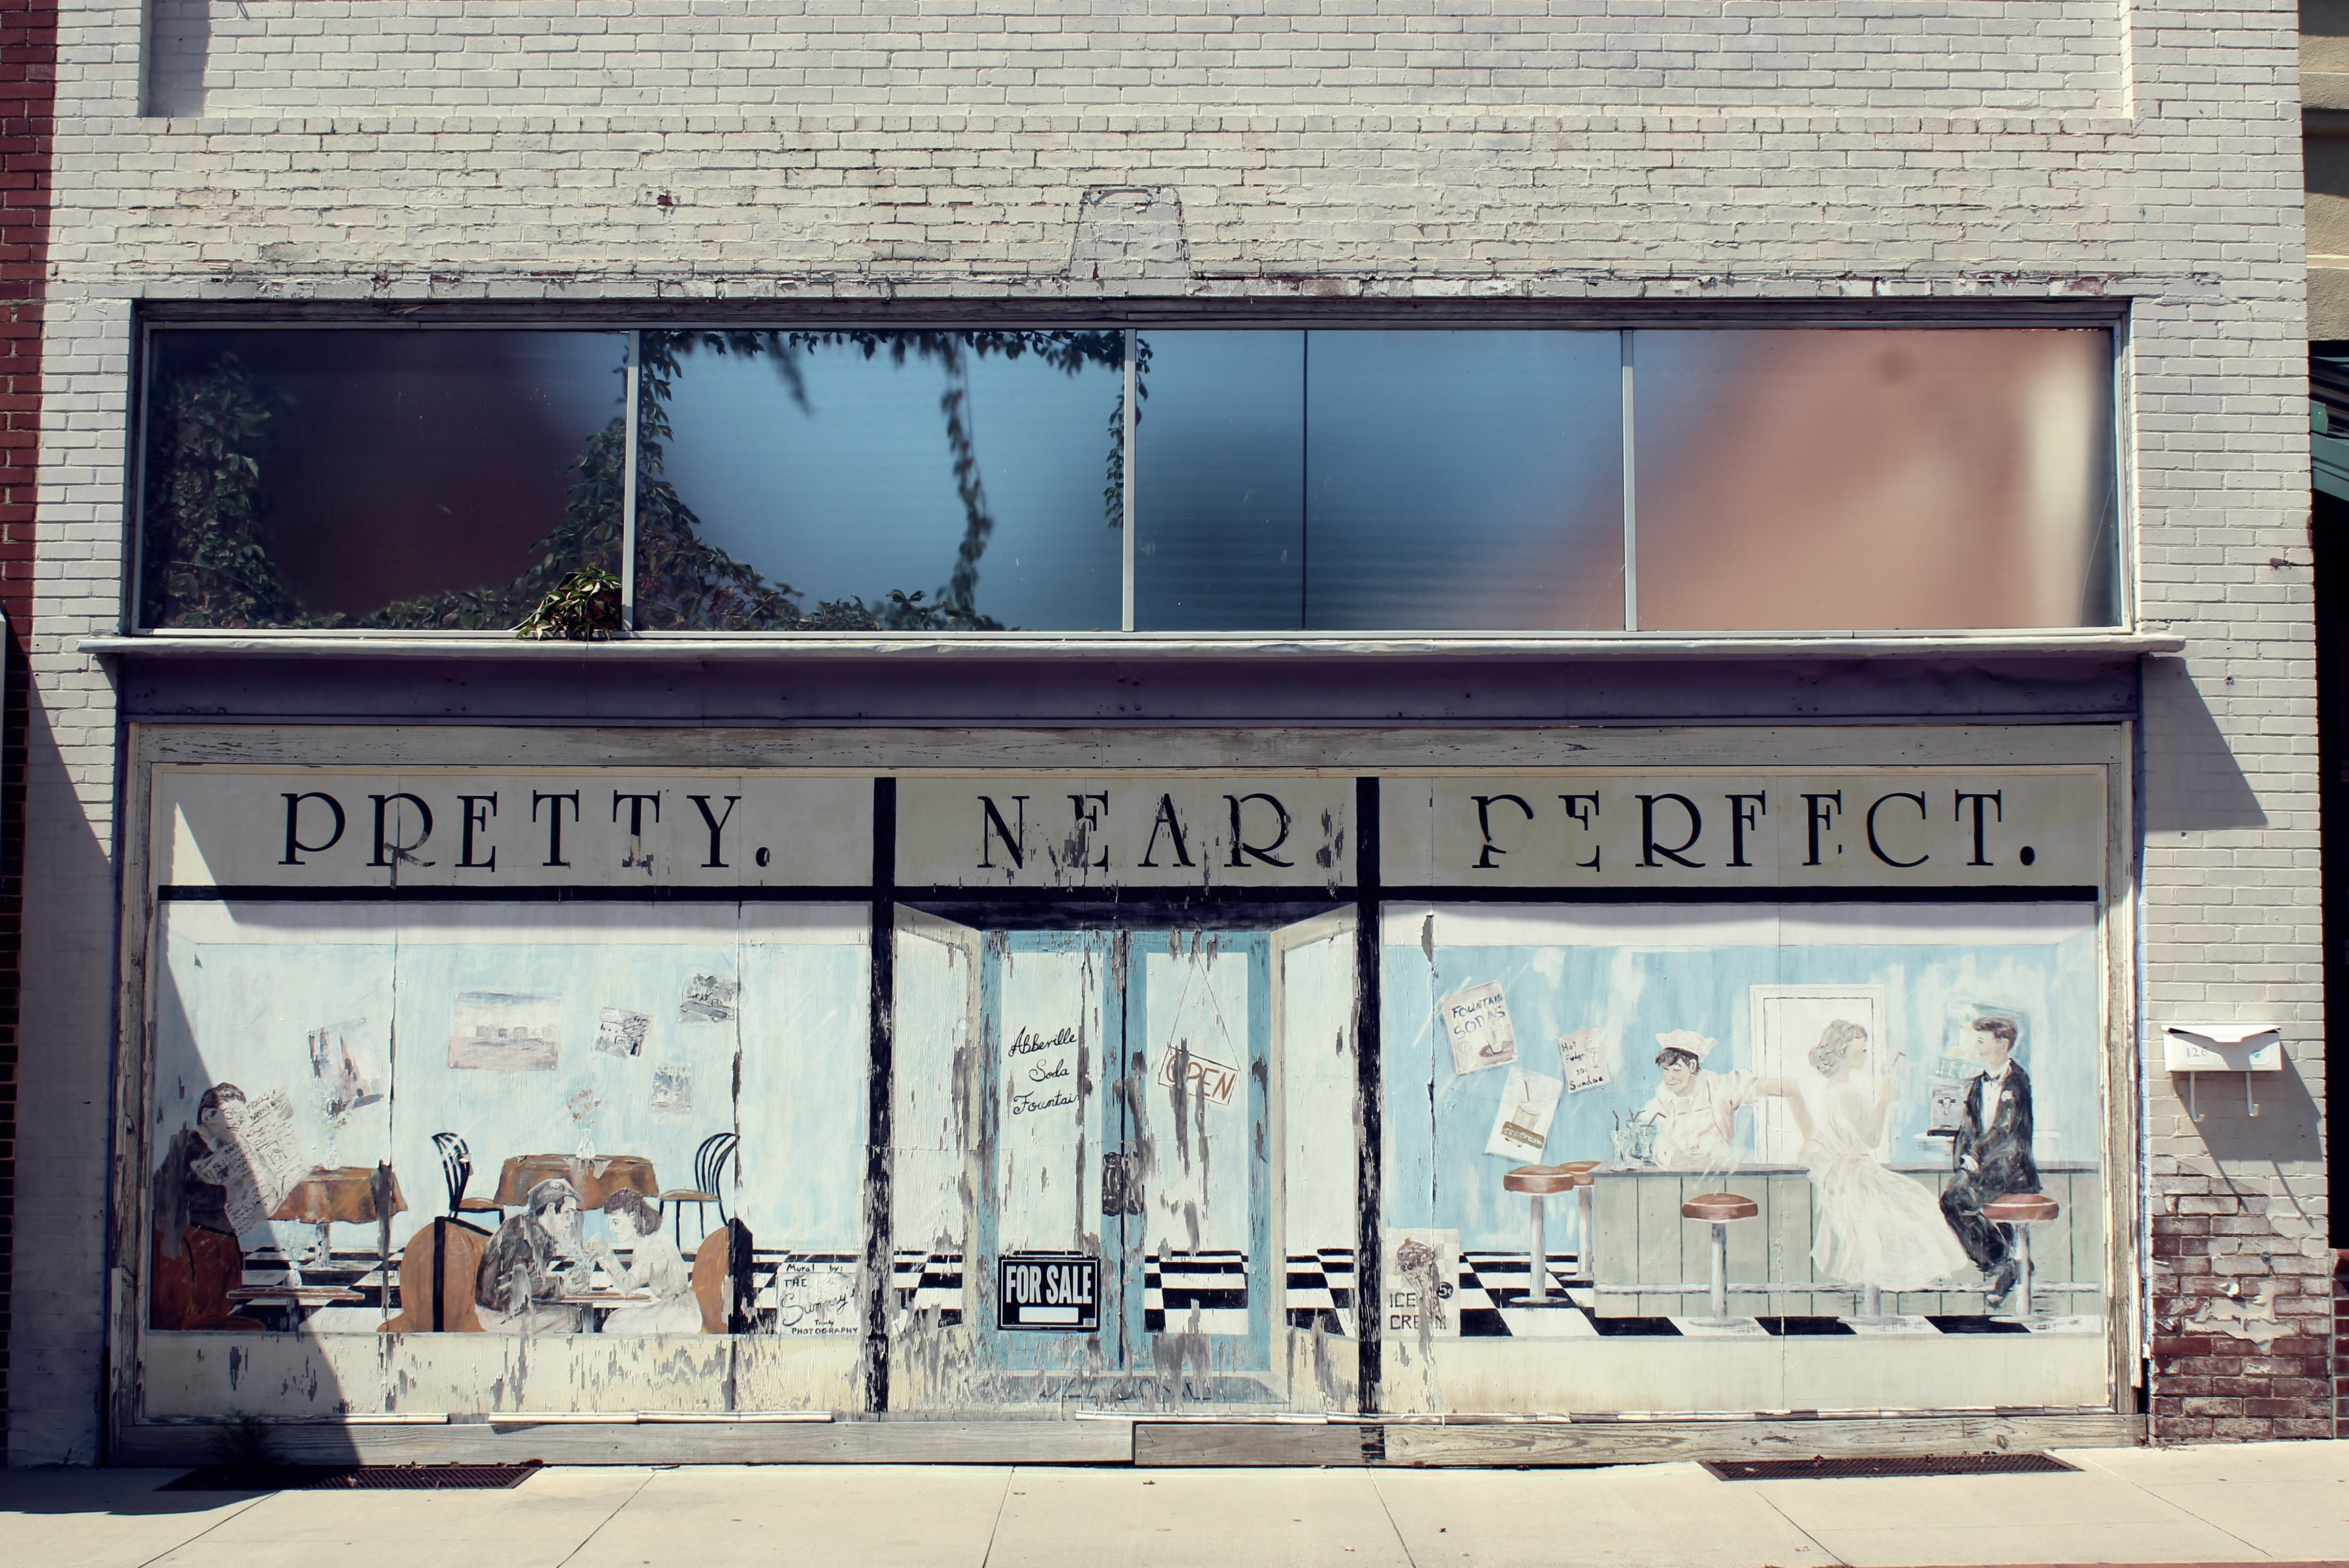 Another abandoned storefront in Abbeville, SC. This one I really love because of the washed-out, muted colors, and the painted scene has the perfect air of nostalgia.